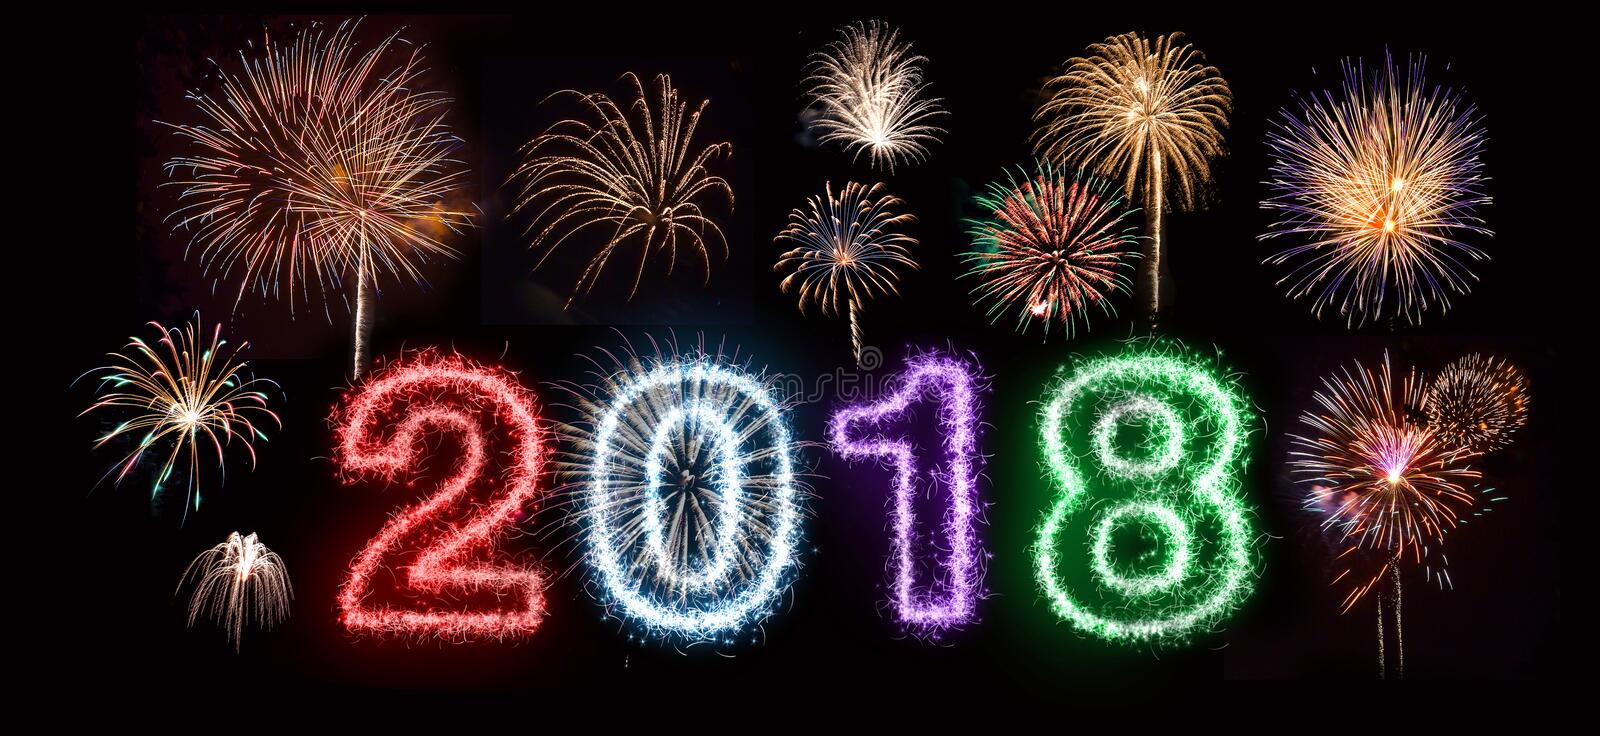 Happy New Year 2018 Fireworks royalty free illustration